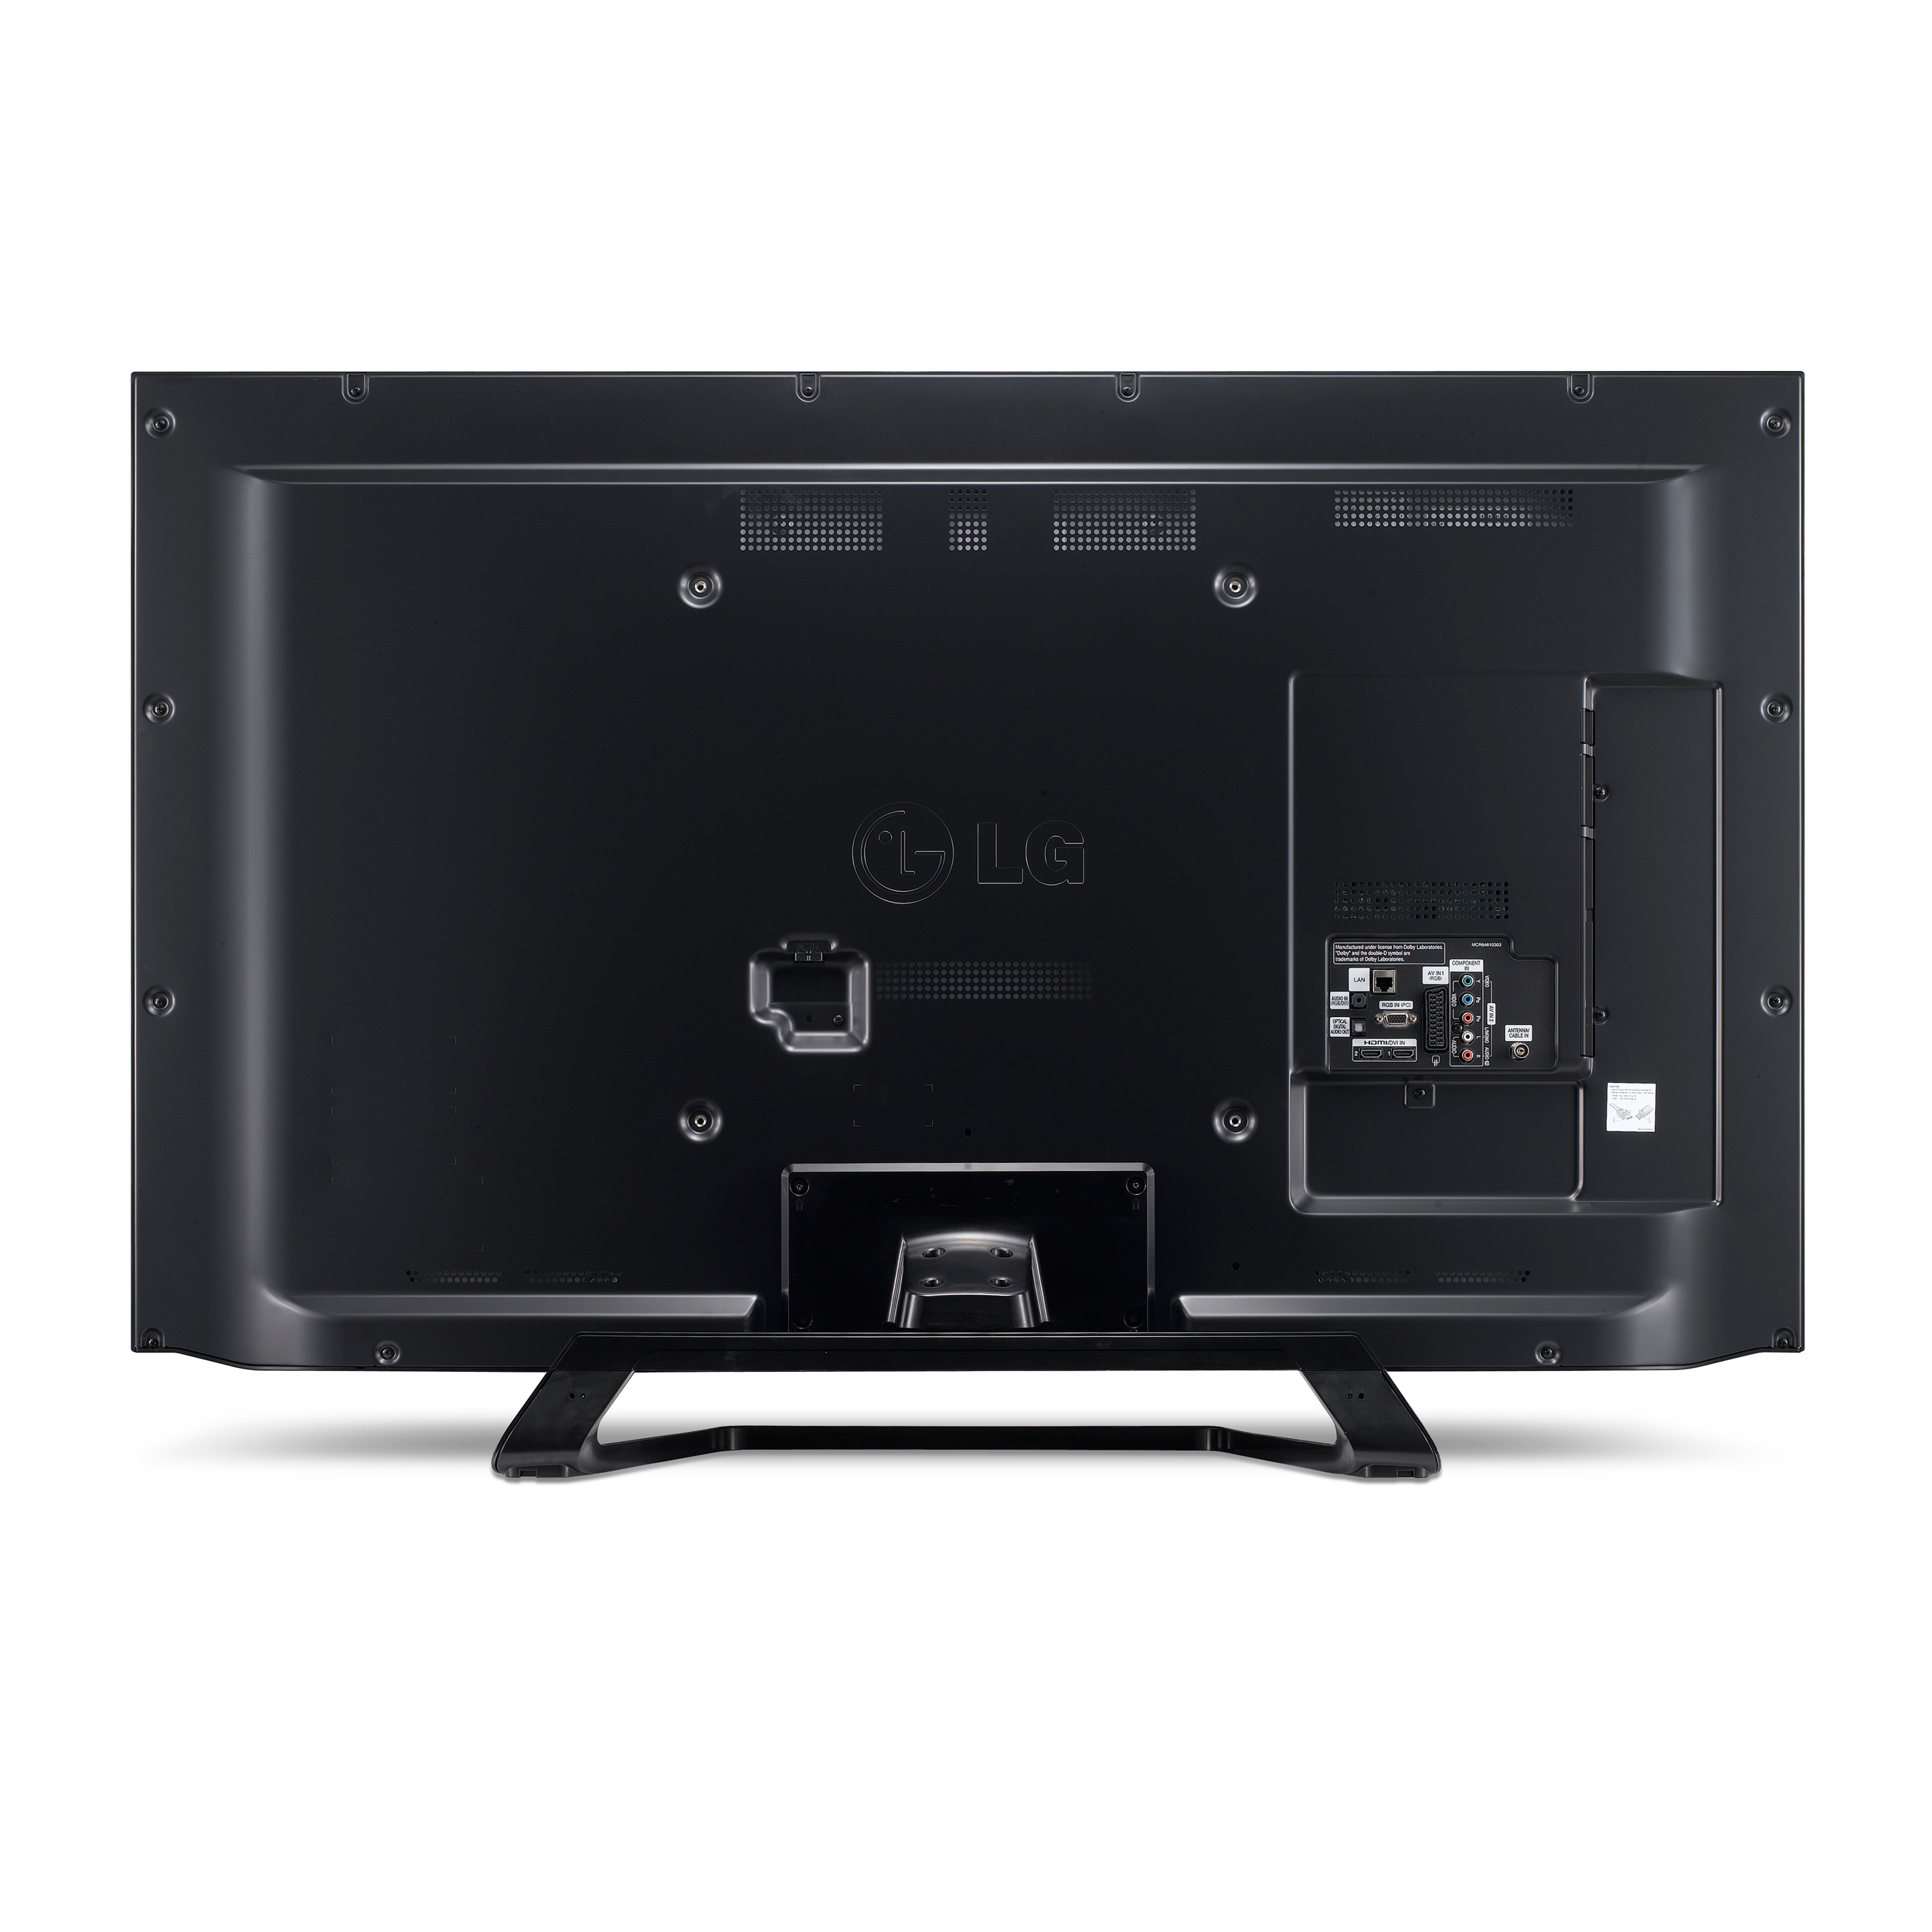 samsung tv 42 inch. samsung hwe551, split design the sound bar system combines innovative audio technology into a slim design. place under your tv as one unit, samsung tv 42 inch t